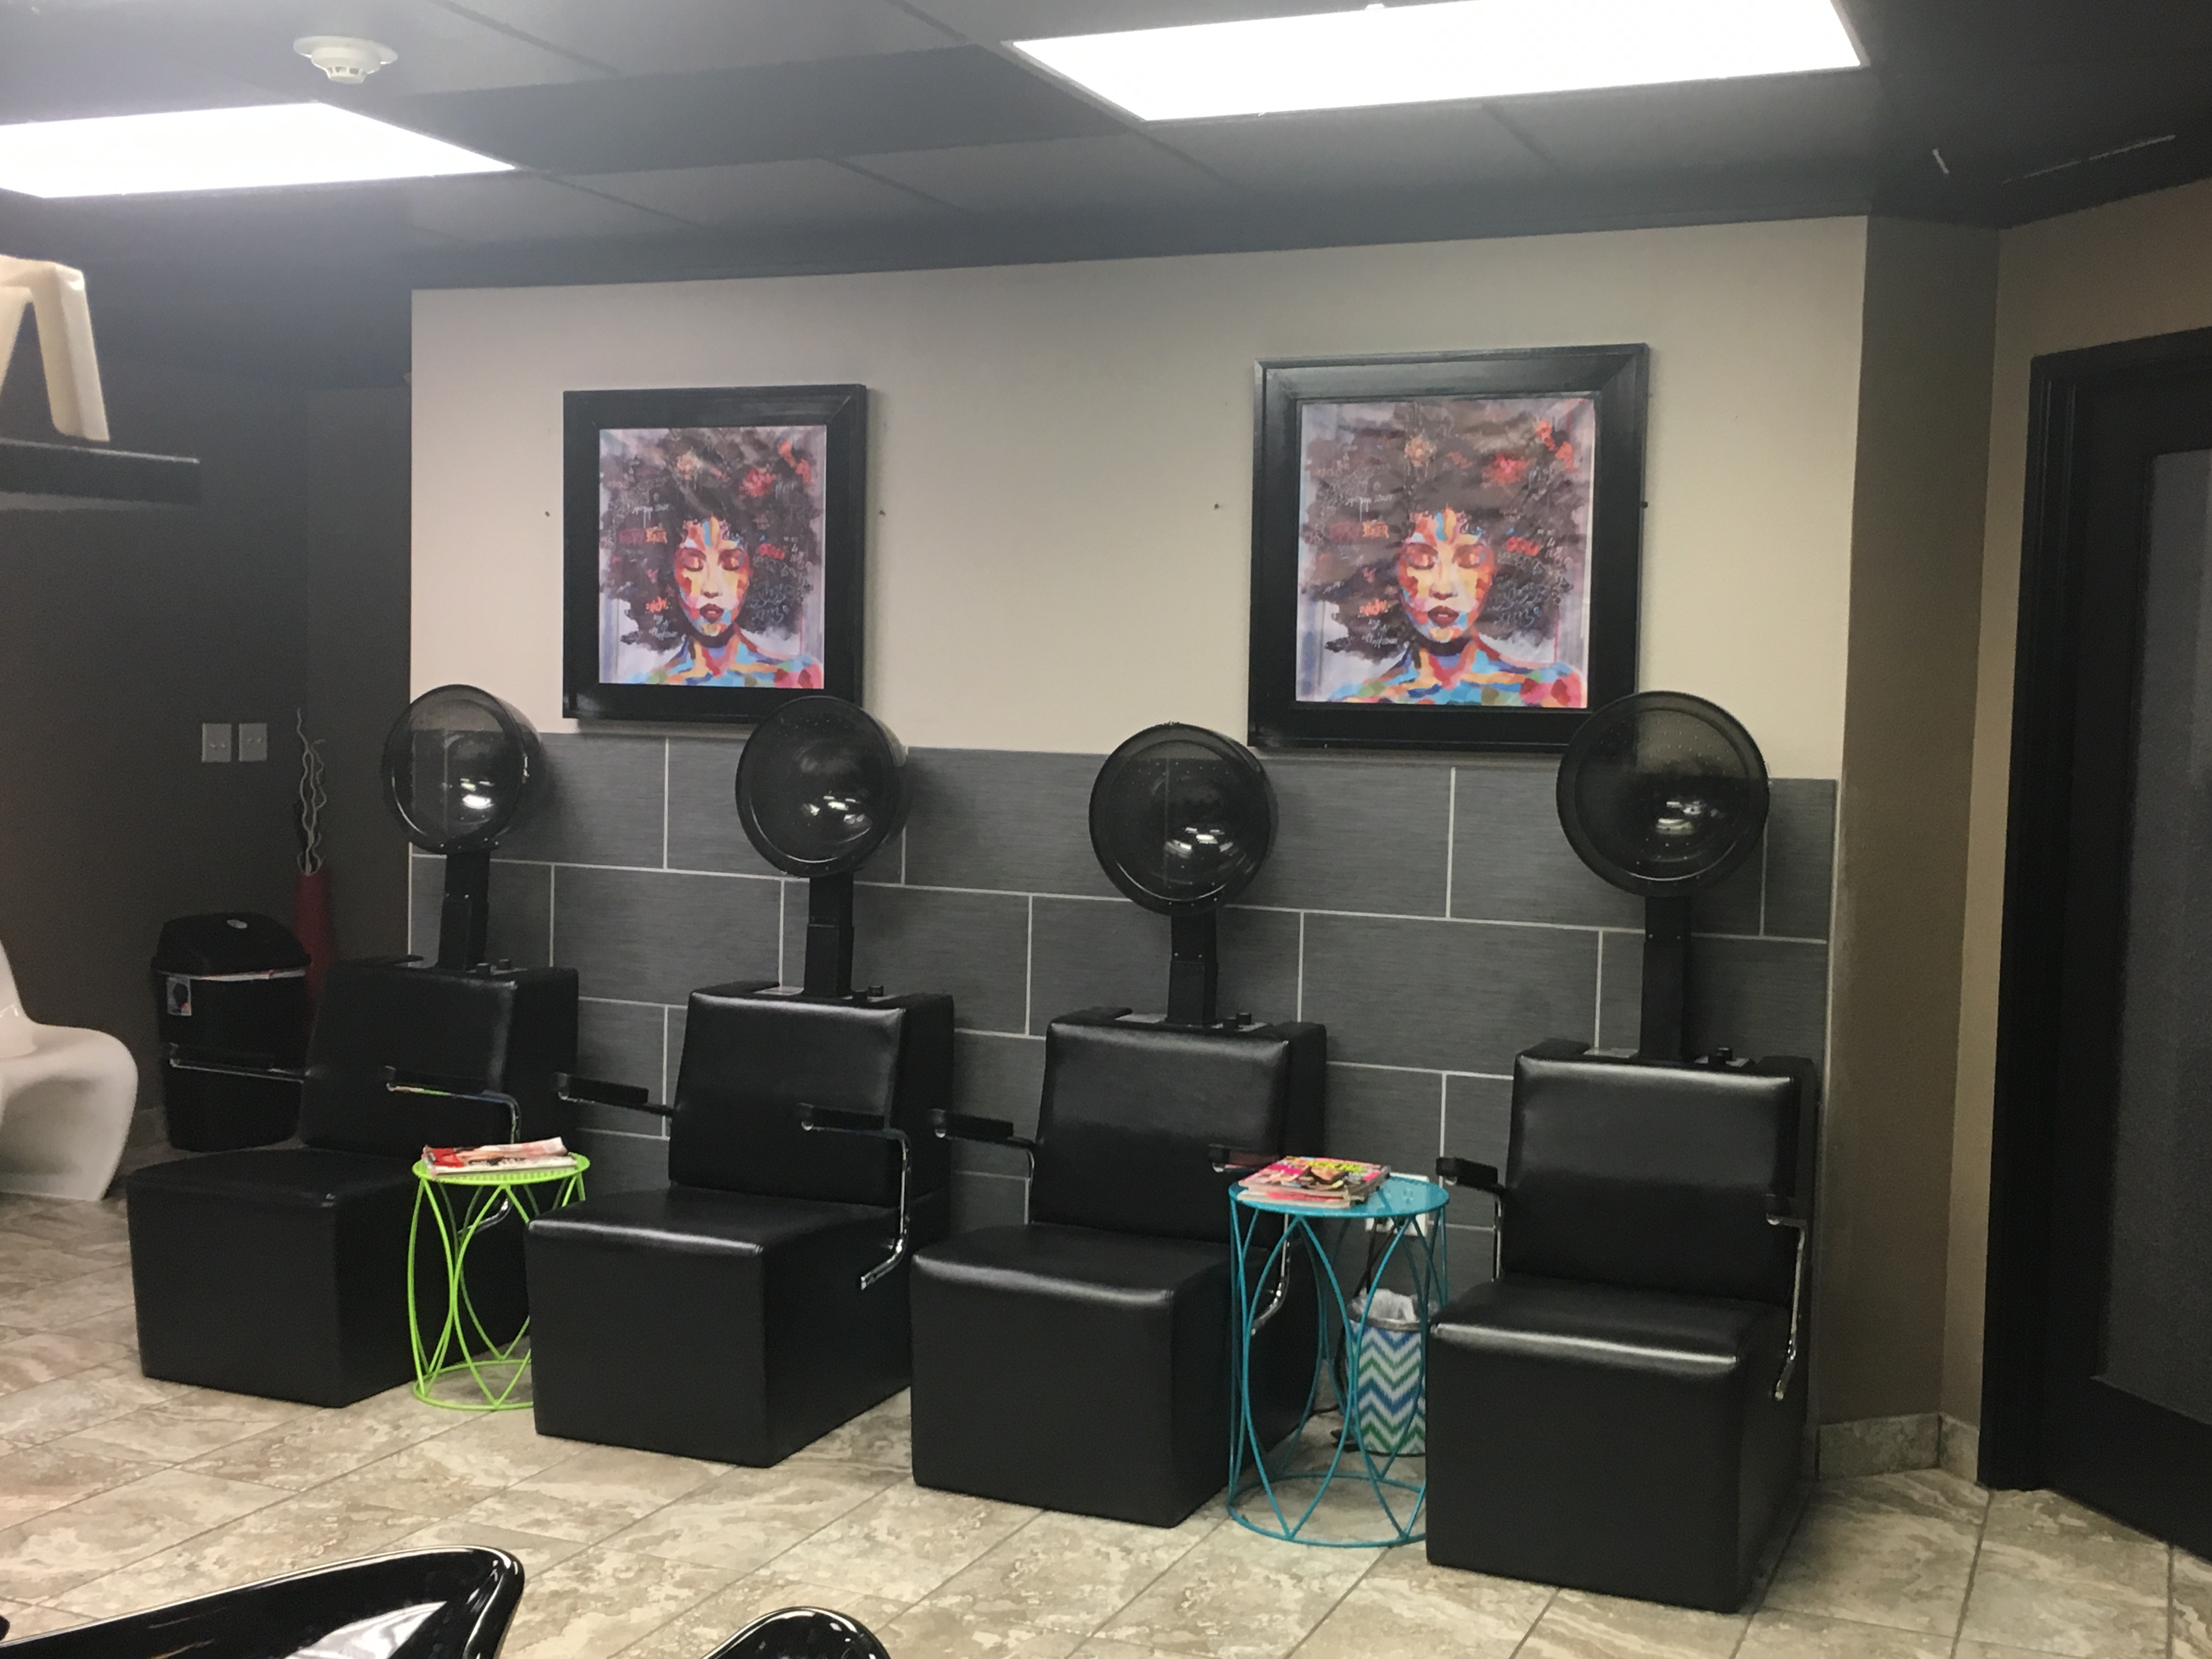 To better understand salon suite rental prices, call Salon & Spa Galleria